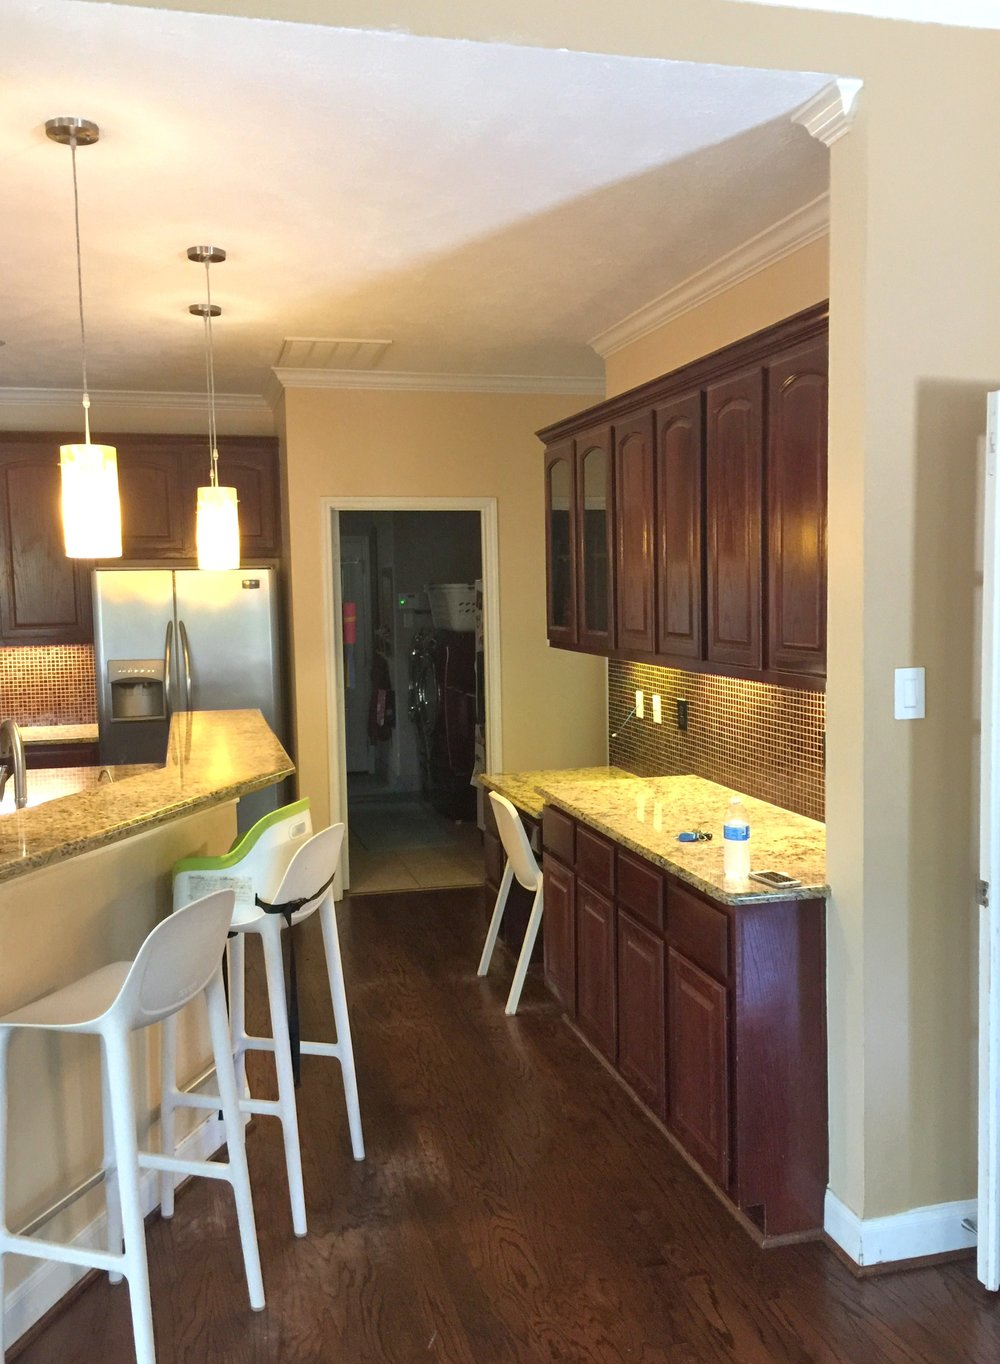 Before - kitchen remodel with small desk and builder standard cabinets above